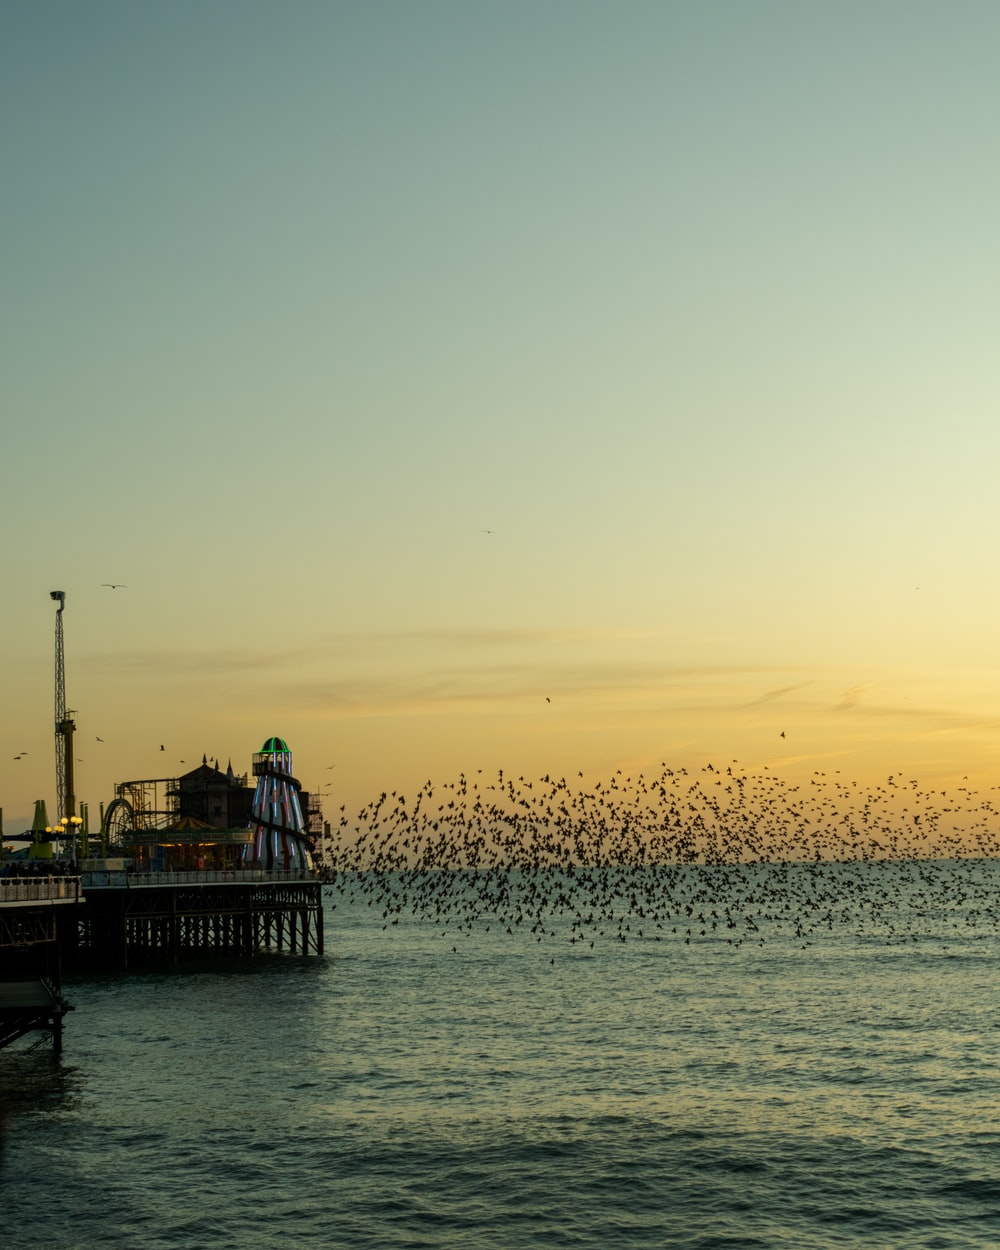 time-lapse photography of flock of birds flying above the sea